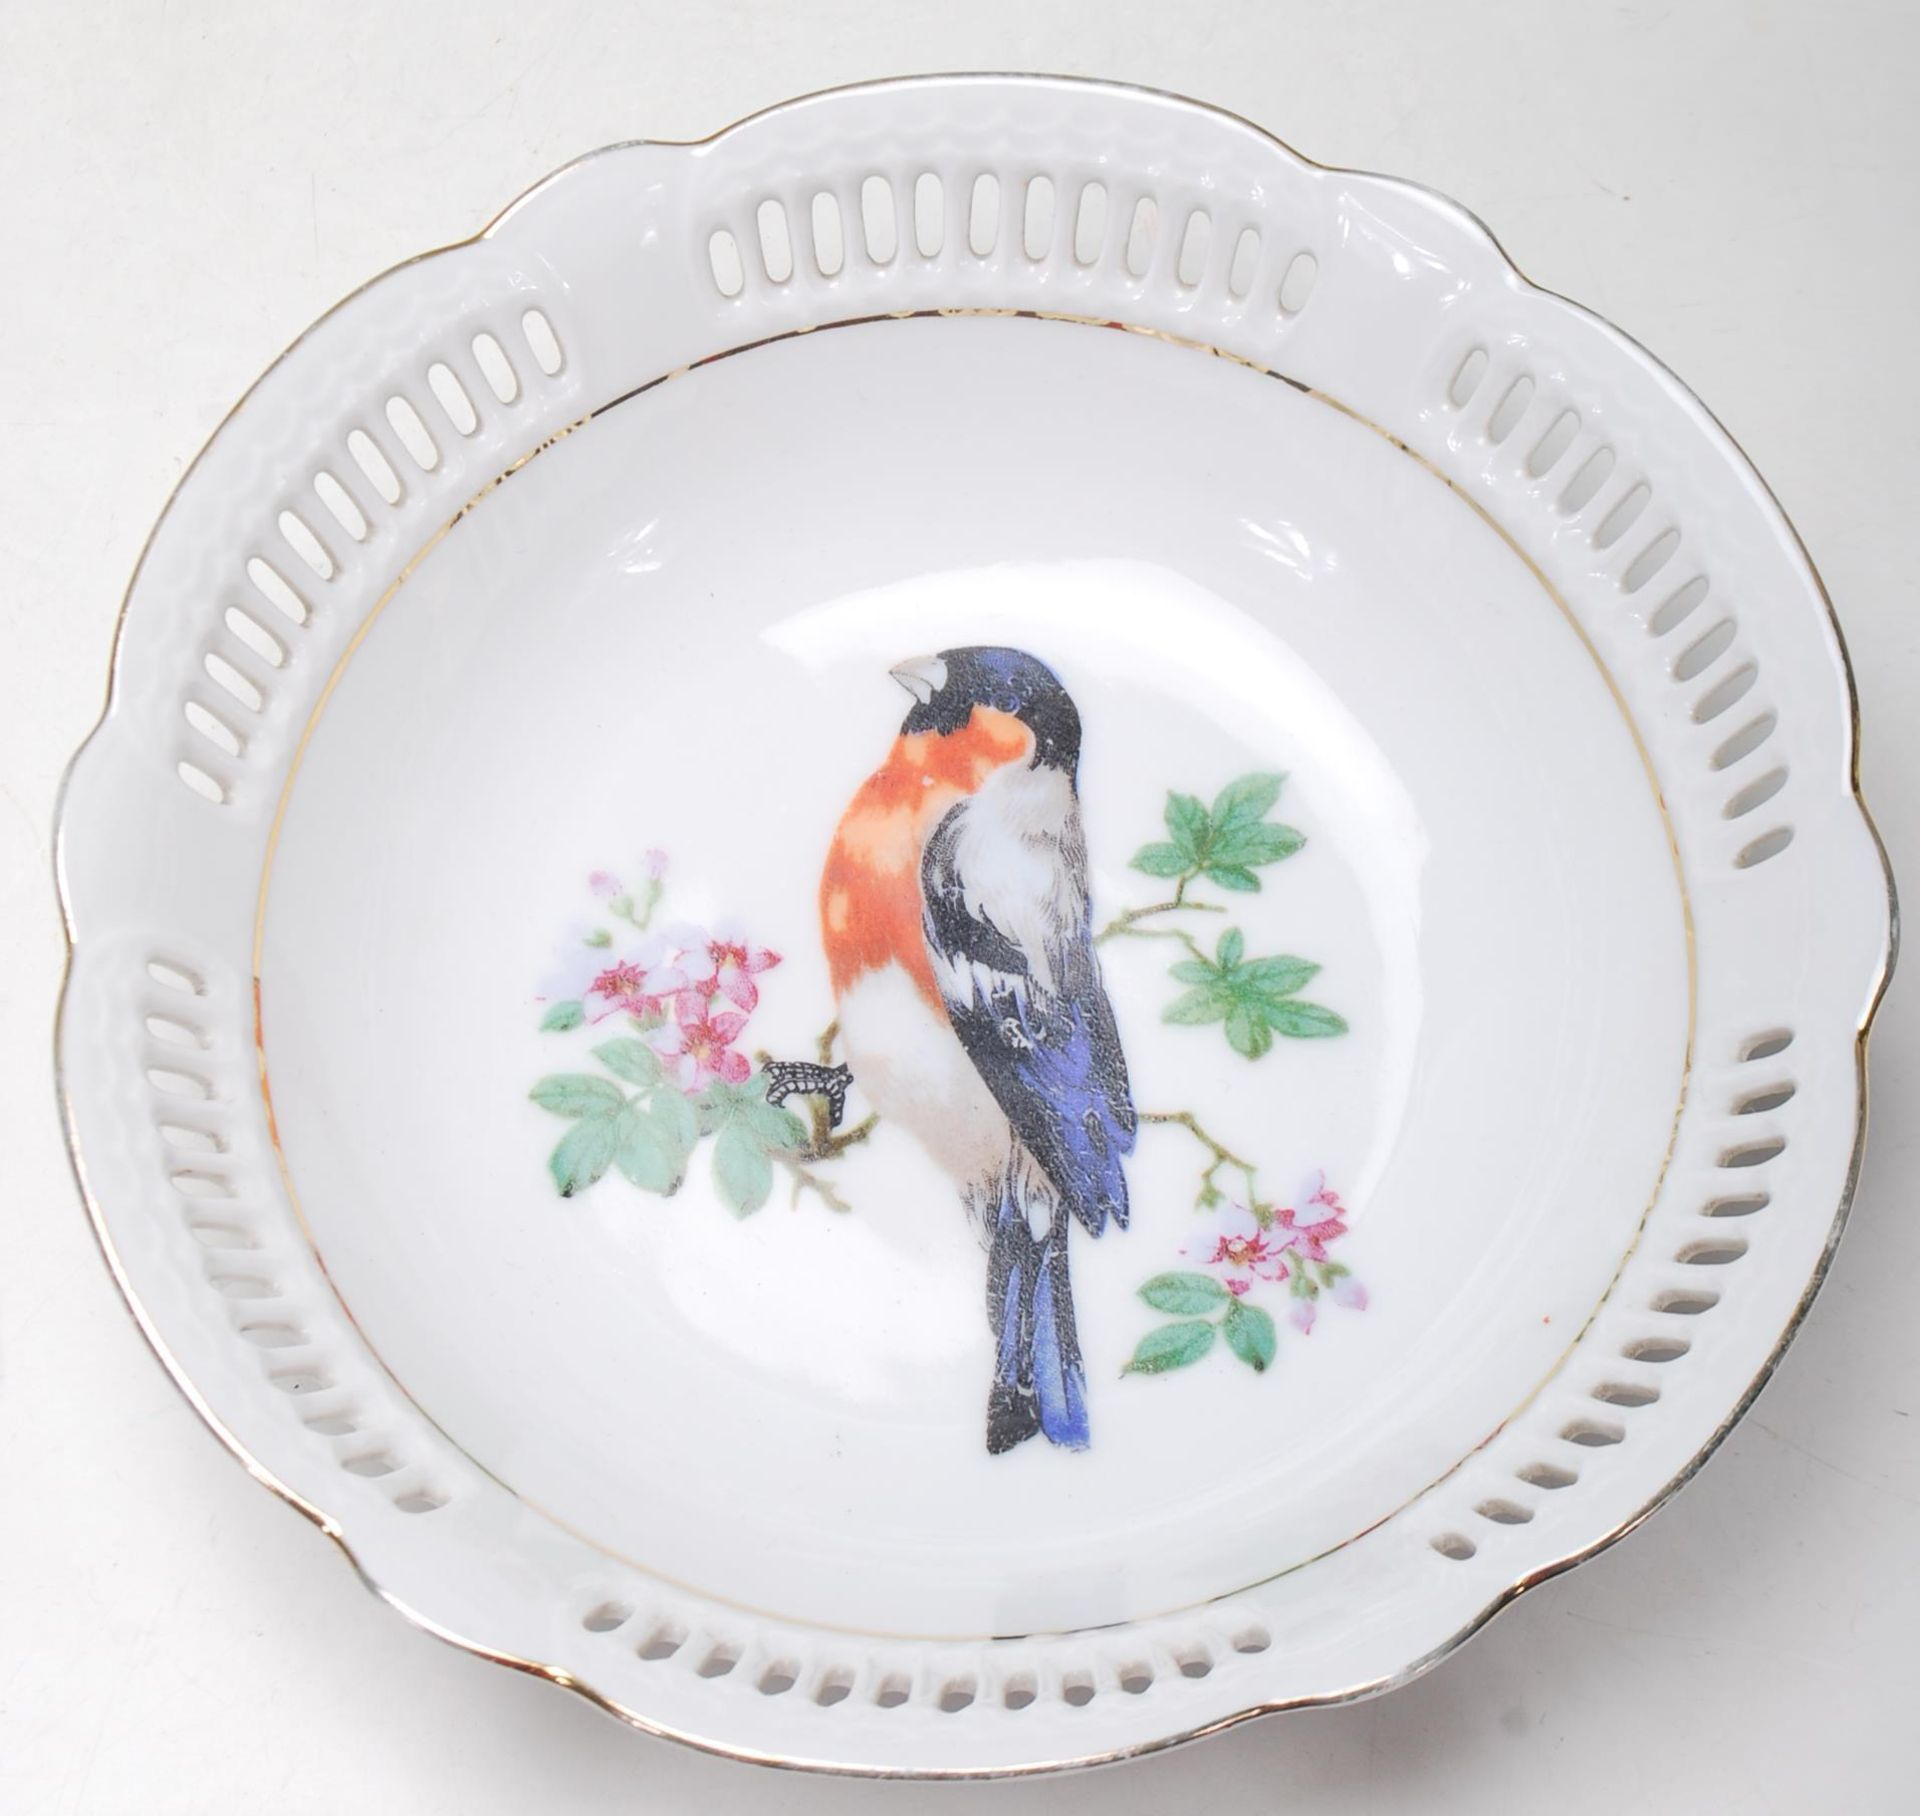 EARLY 20TH CENTURY CERAMIC TABLE WARE - Image 6 of 13